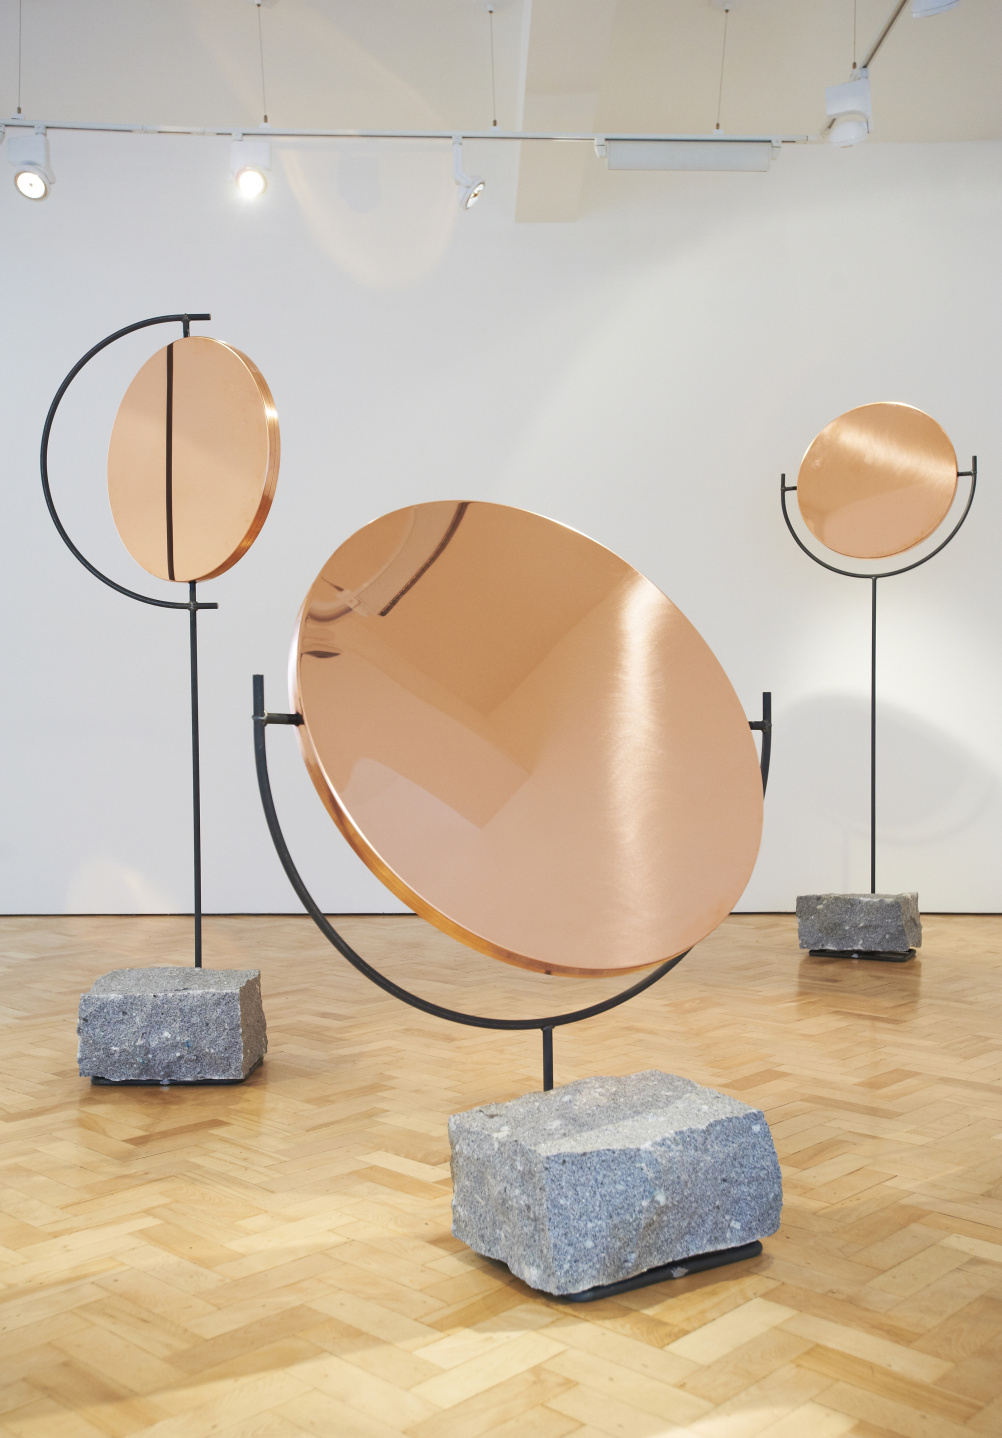 Installation view, The Copper Mirror Series, by Hunting and Narud, 2013